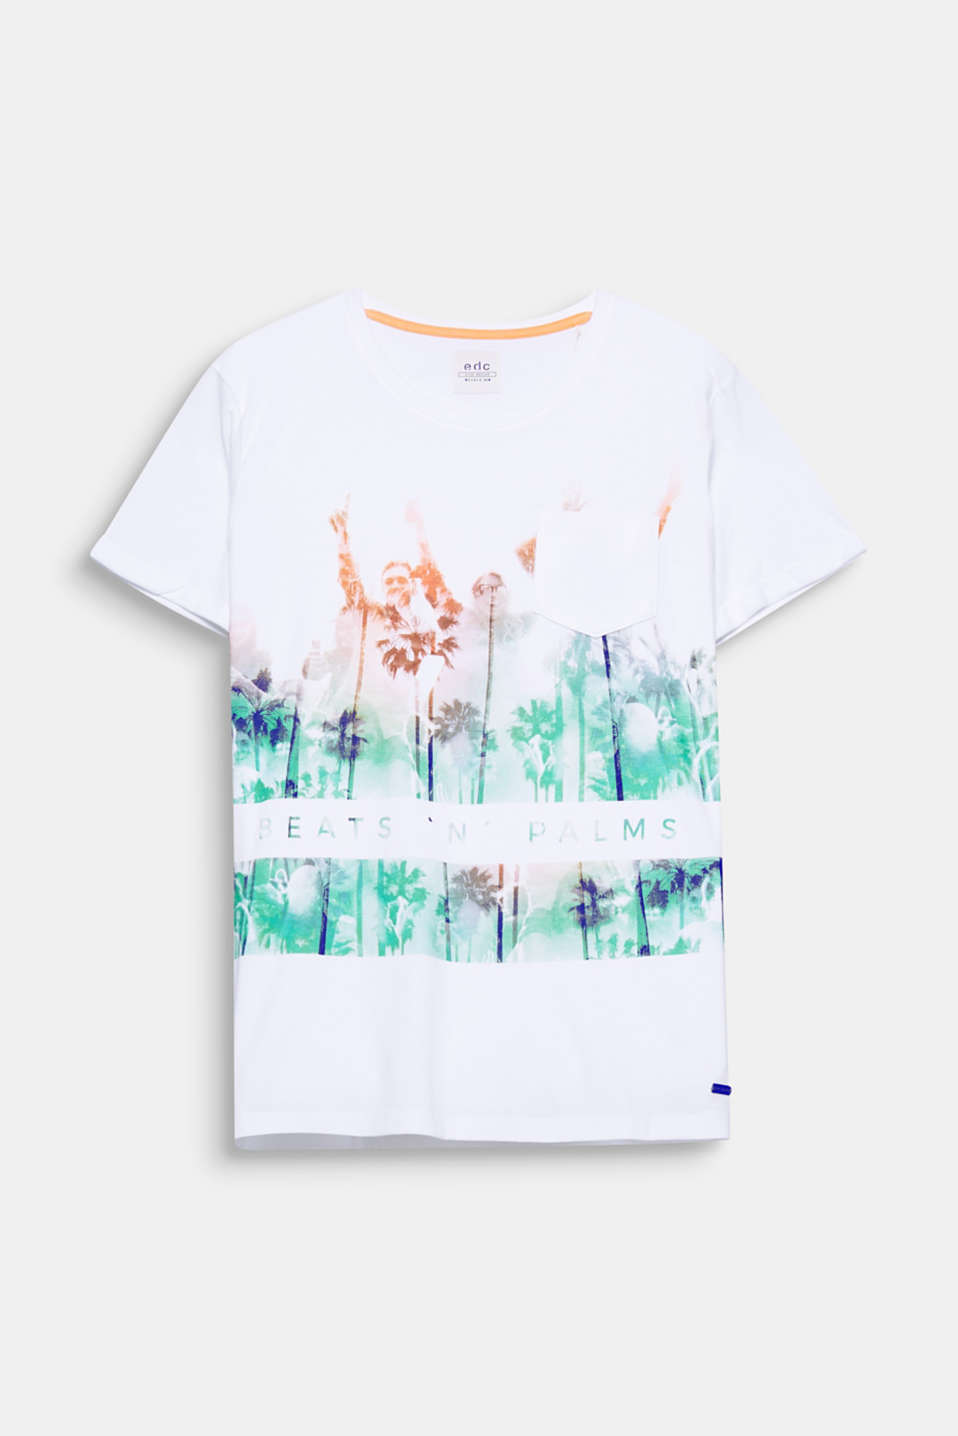 Beats and palm trees – the bold statement photo print on this cotton top gets you ready for the summer festival season perfectly.